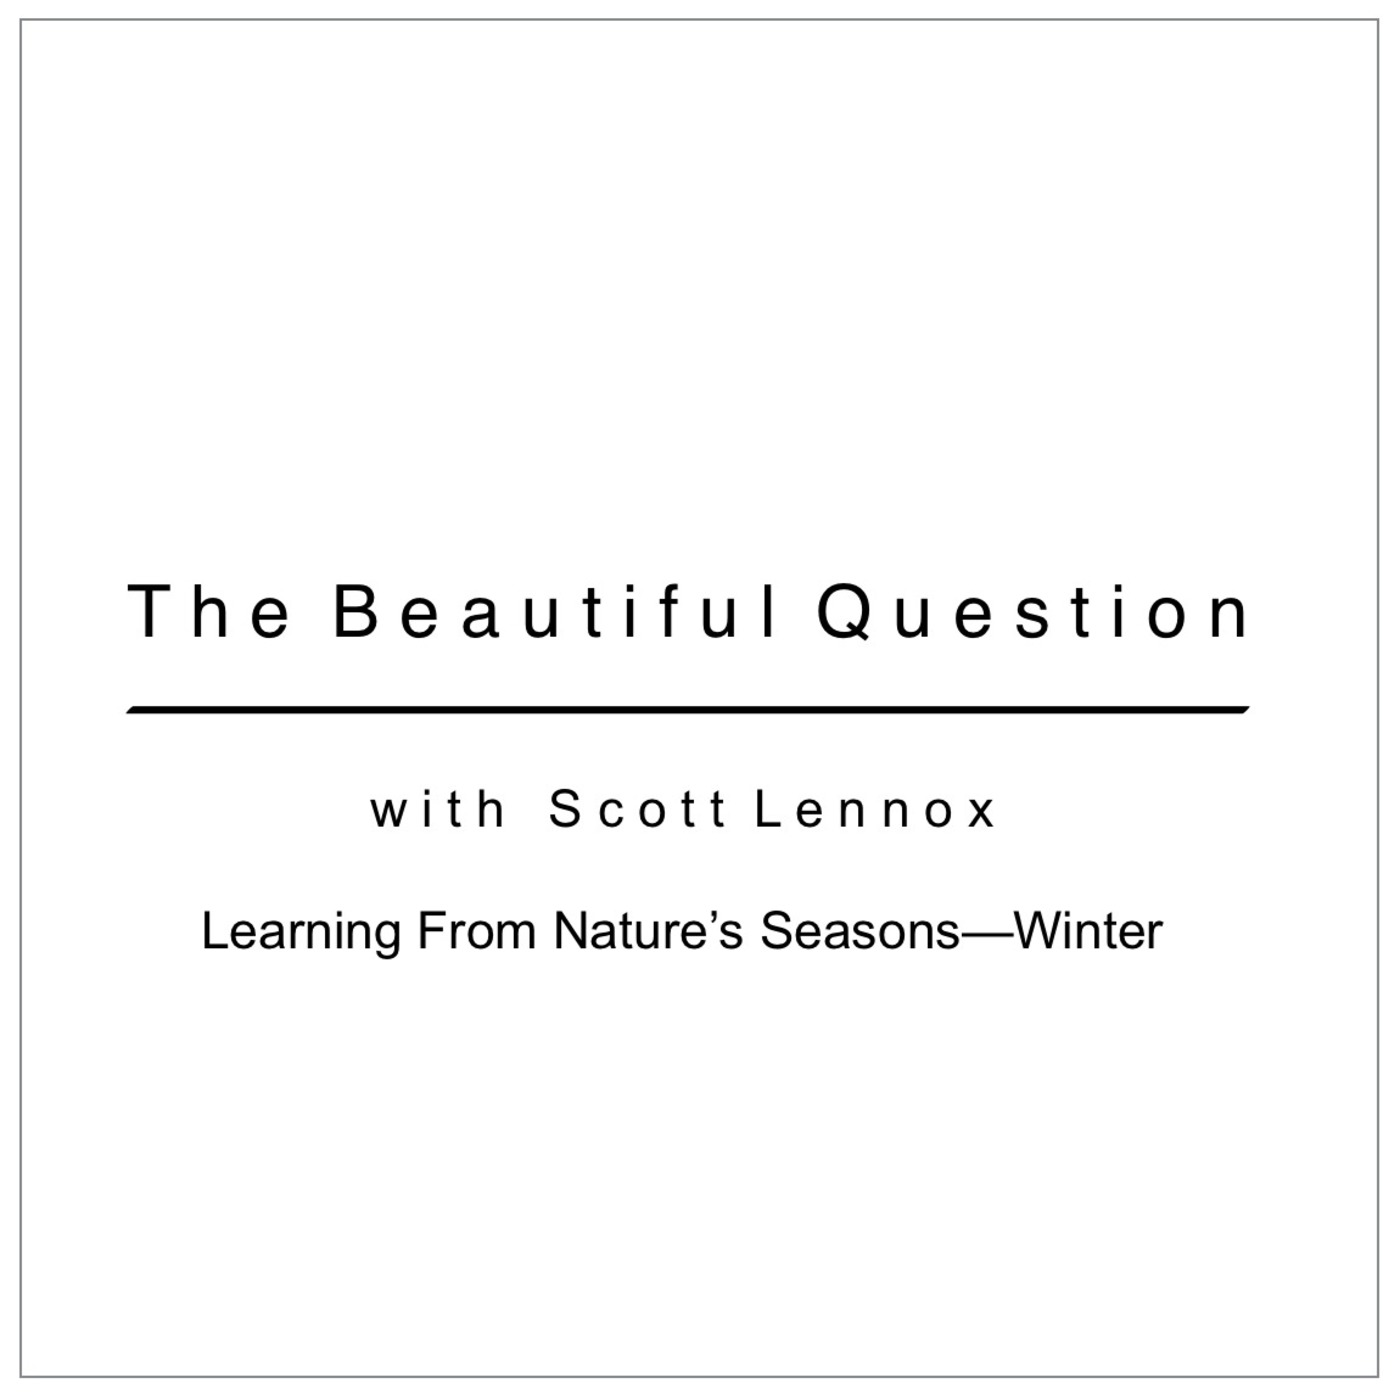 Learning From Nature's Seasons-Winter